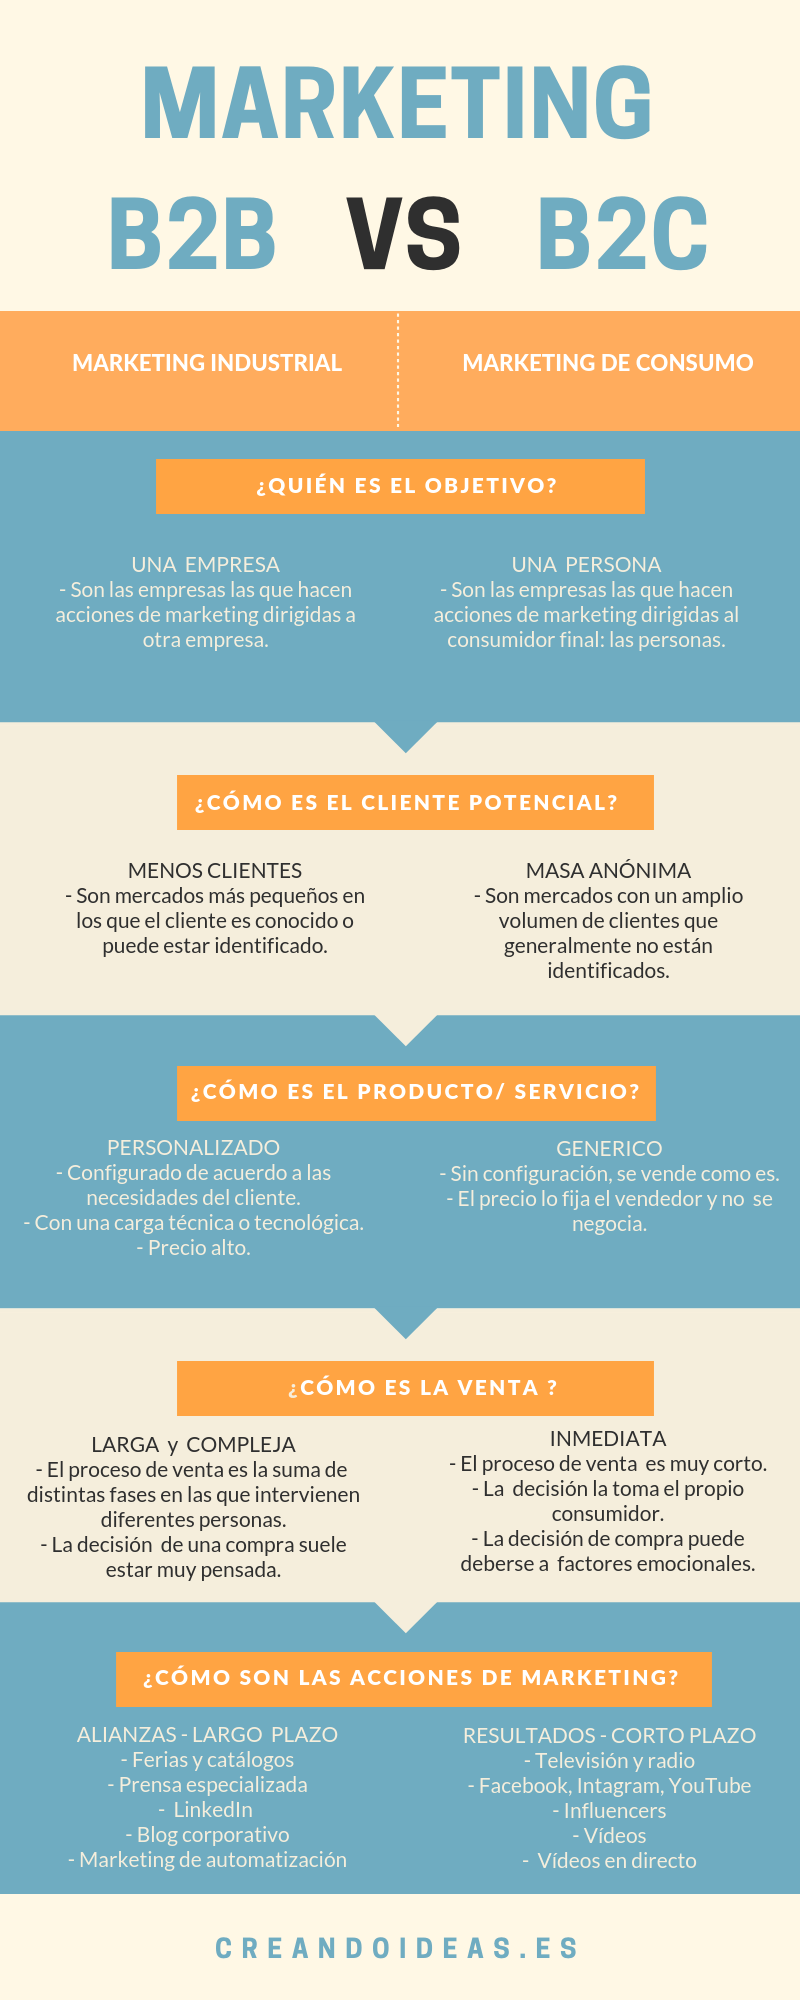 Diferencias entre marketing B2B y marketing B2C